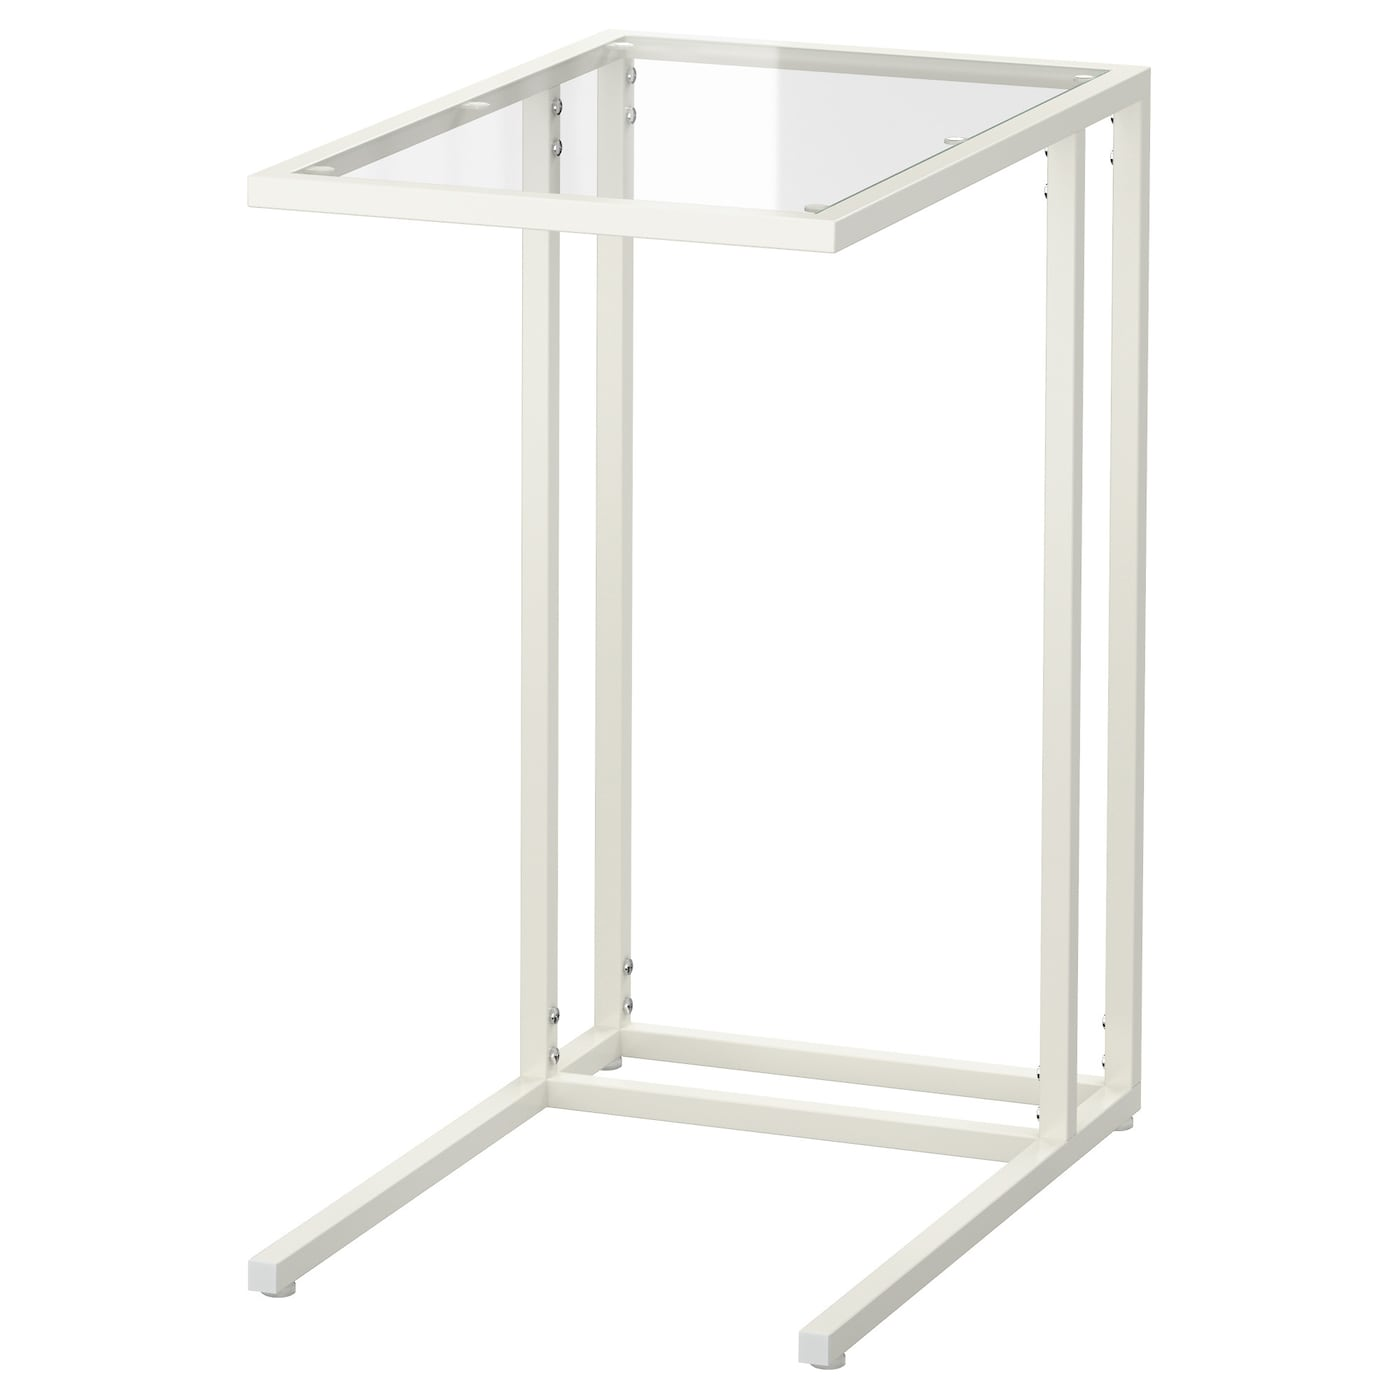 IKEA VITTSJÖ support pr portable